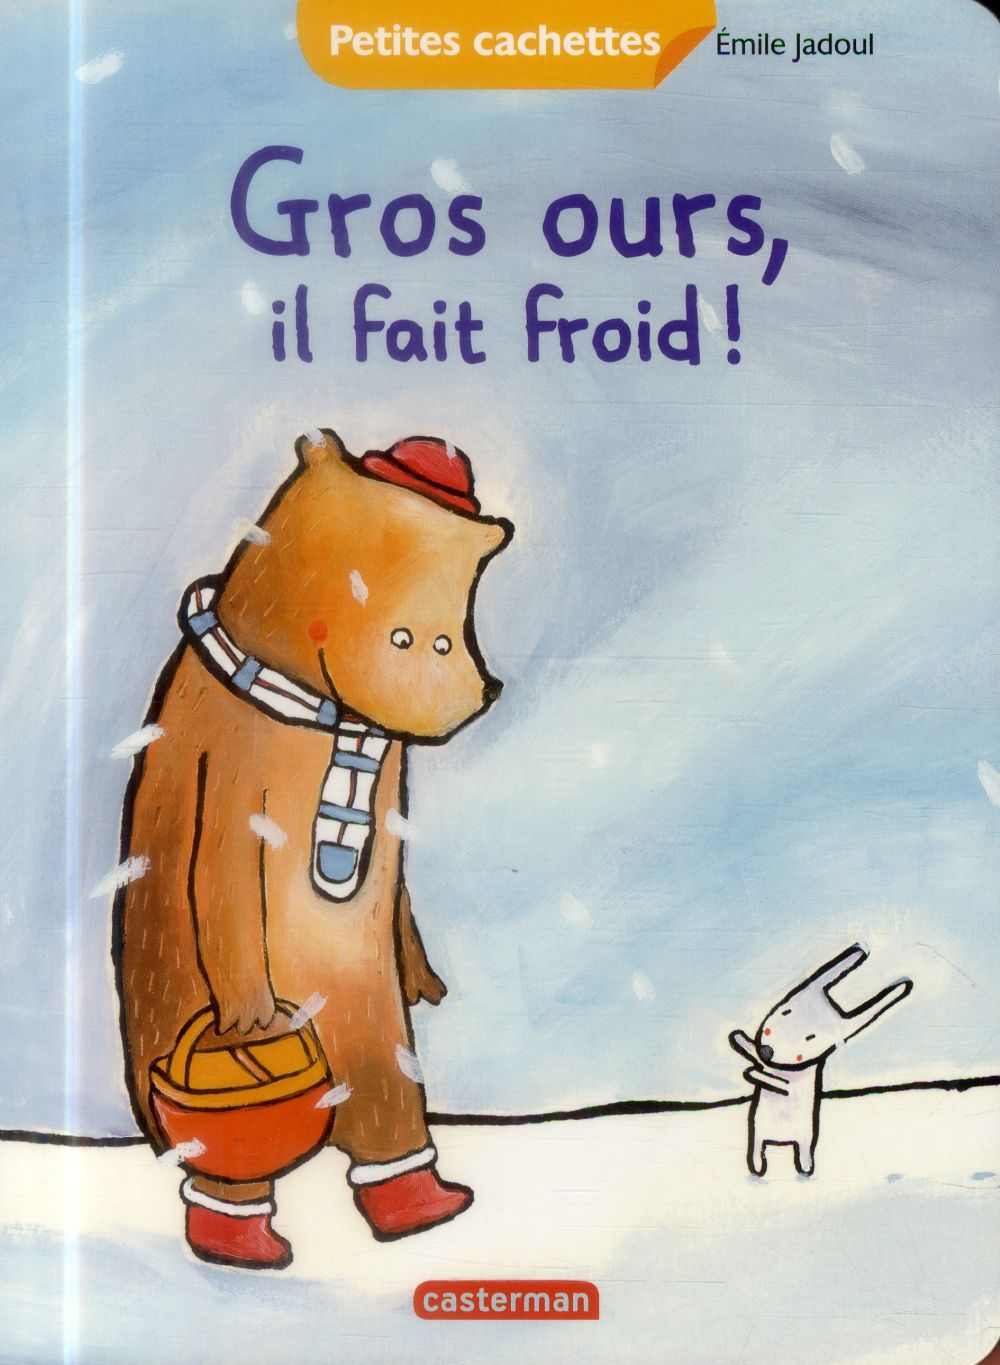 Gros ours, il fait froid!